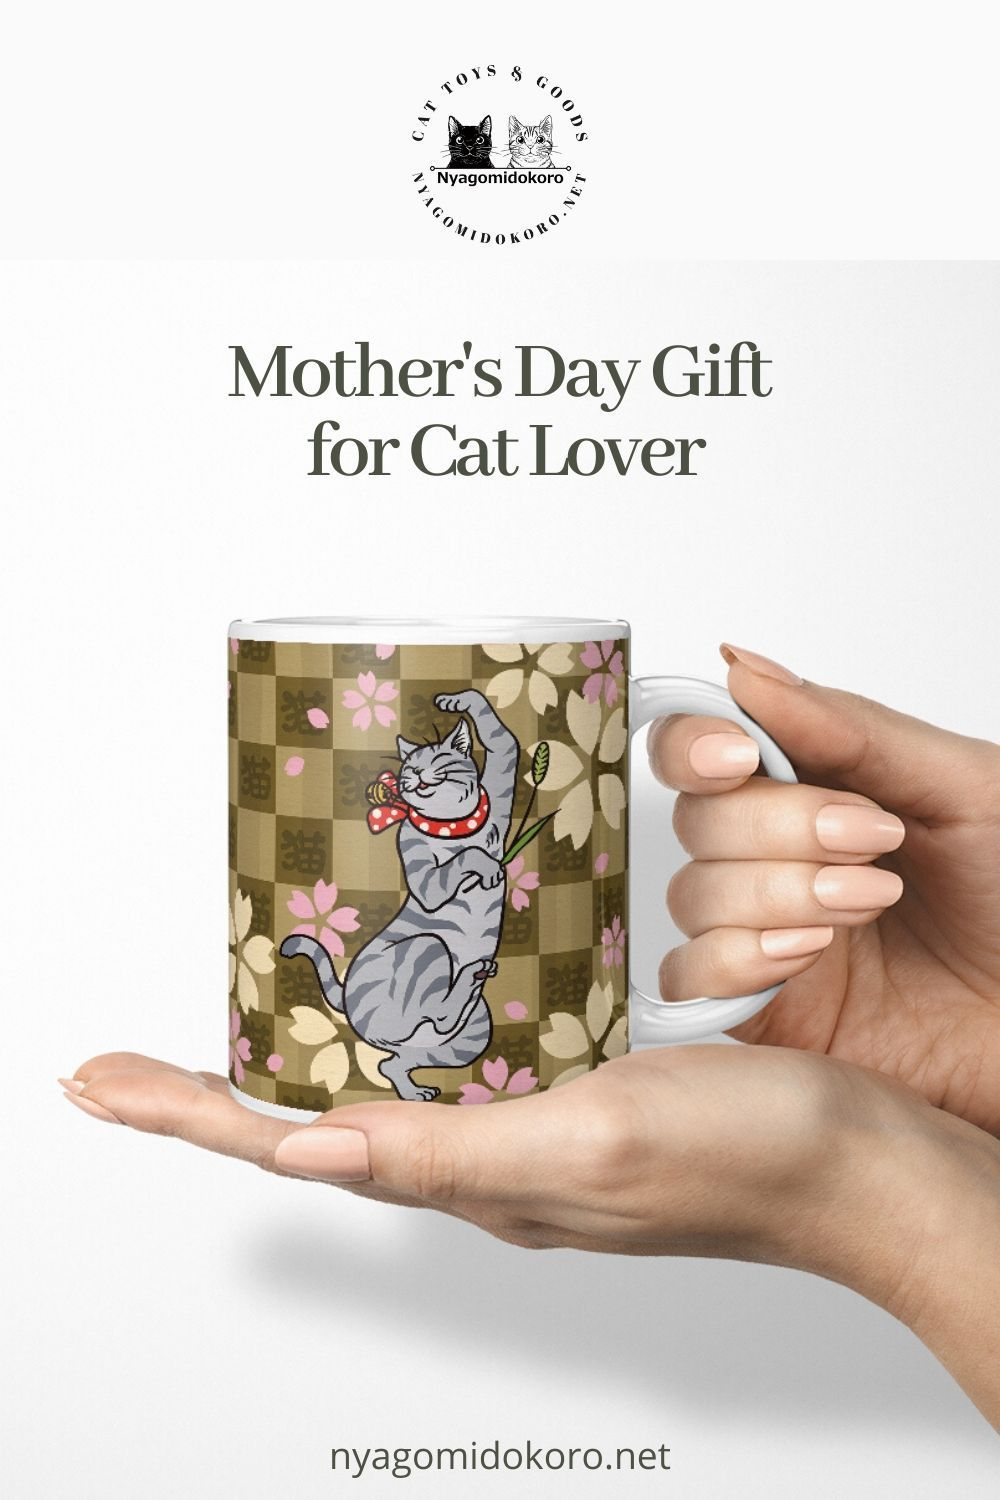 Mother's day gift ideas for cat lovers